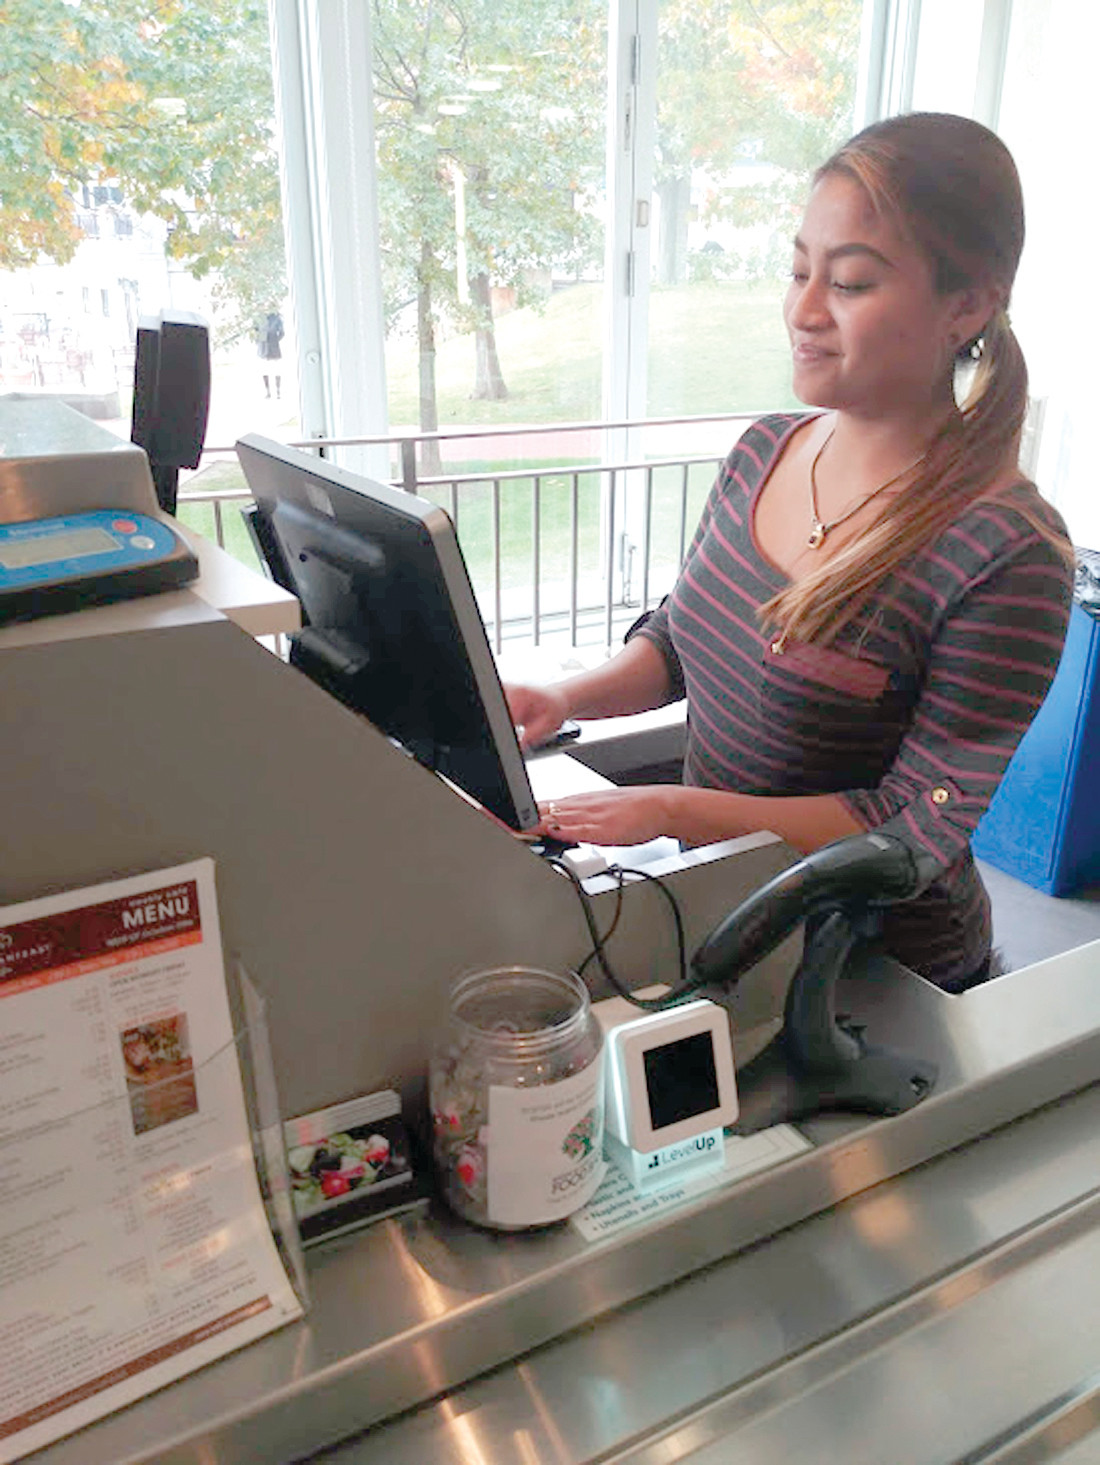 READYING FOR THE RUSH: Intern Gabby Warren is at the cash register inside of the BCBSRI cafeteria as the midday lunch rush is about to start.